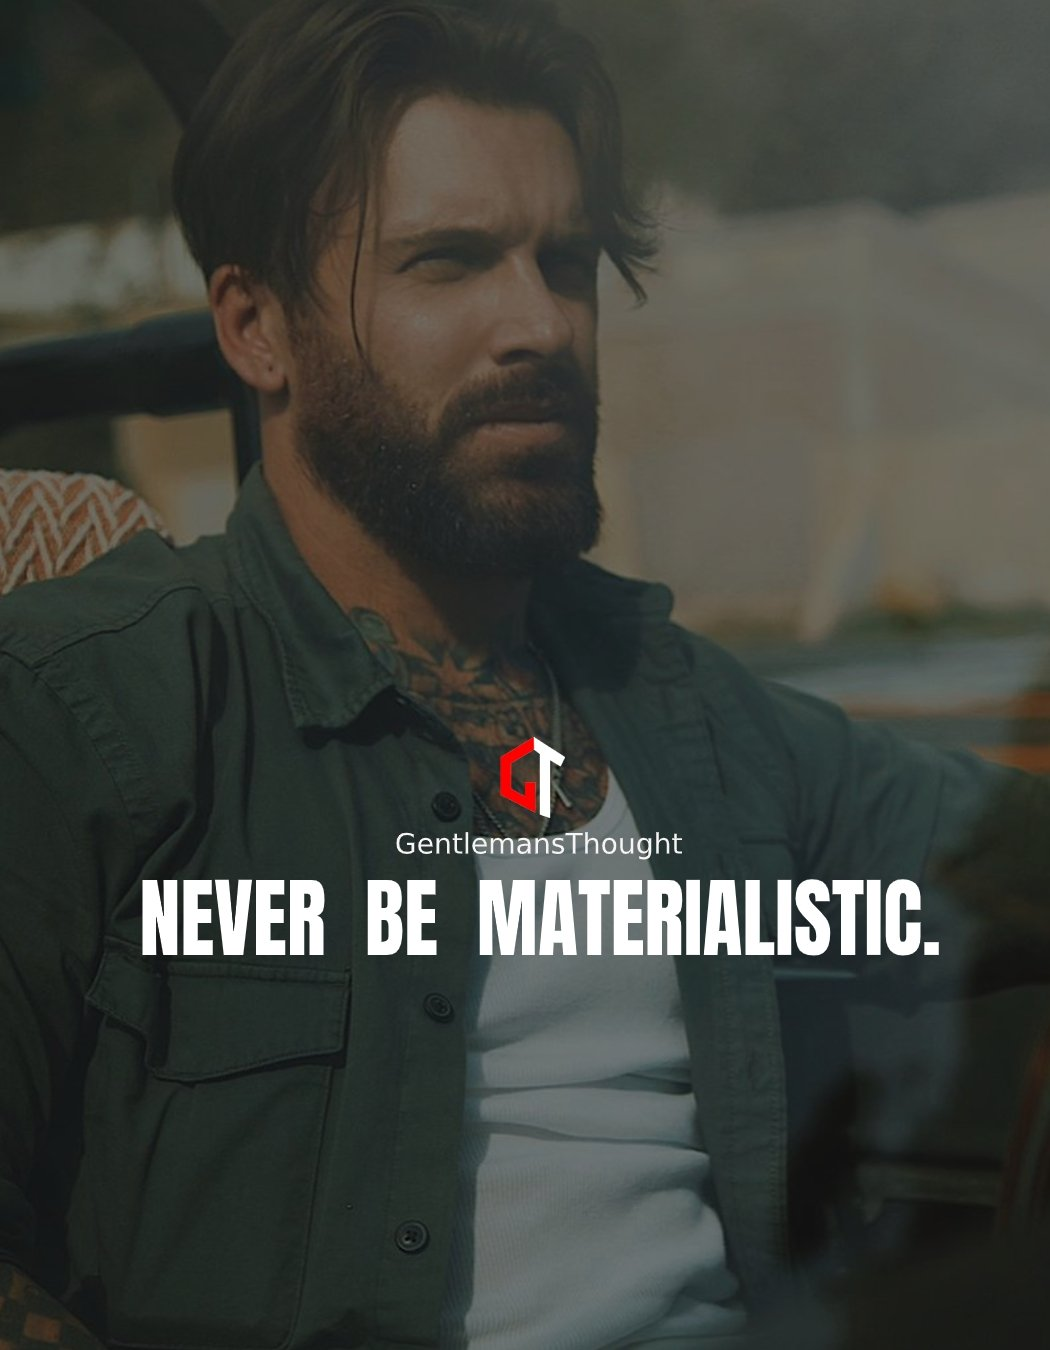 Never be materialistic.